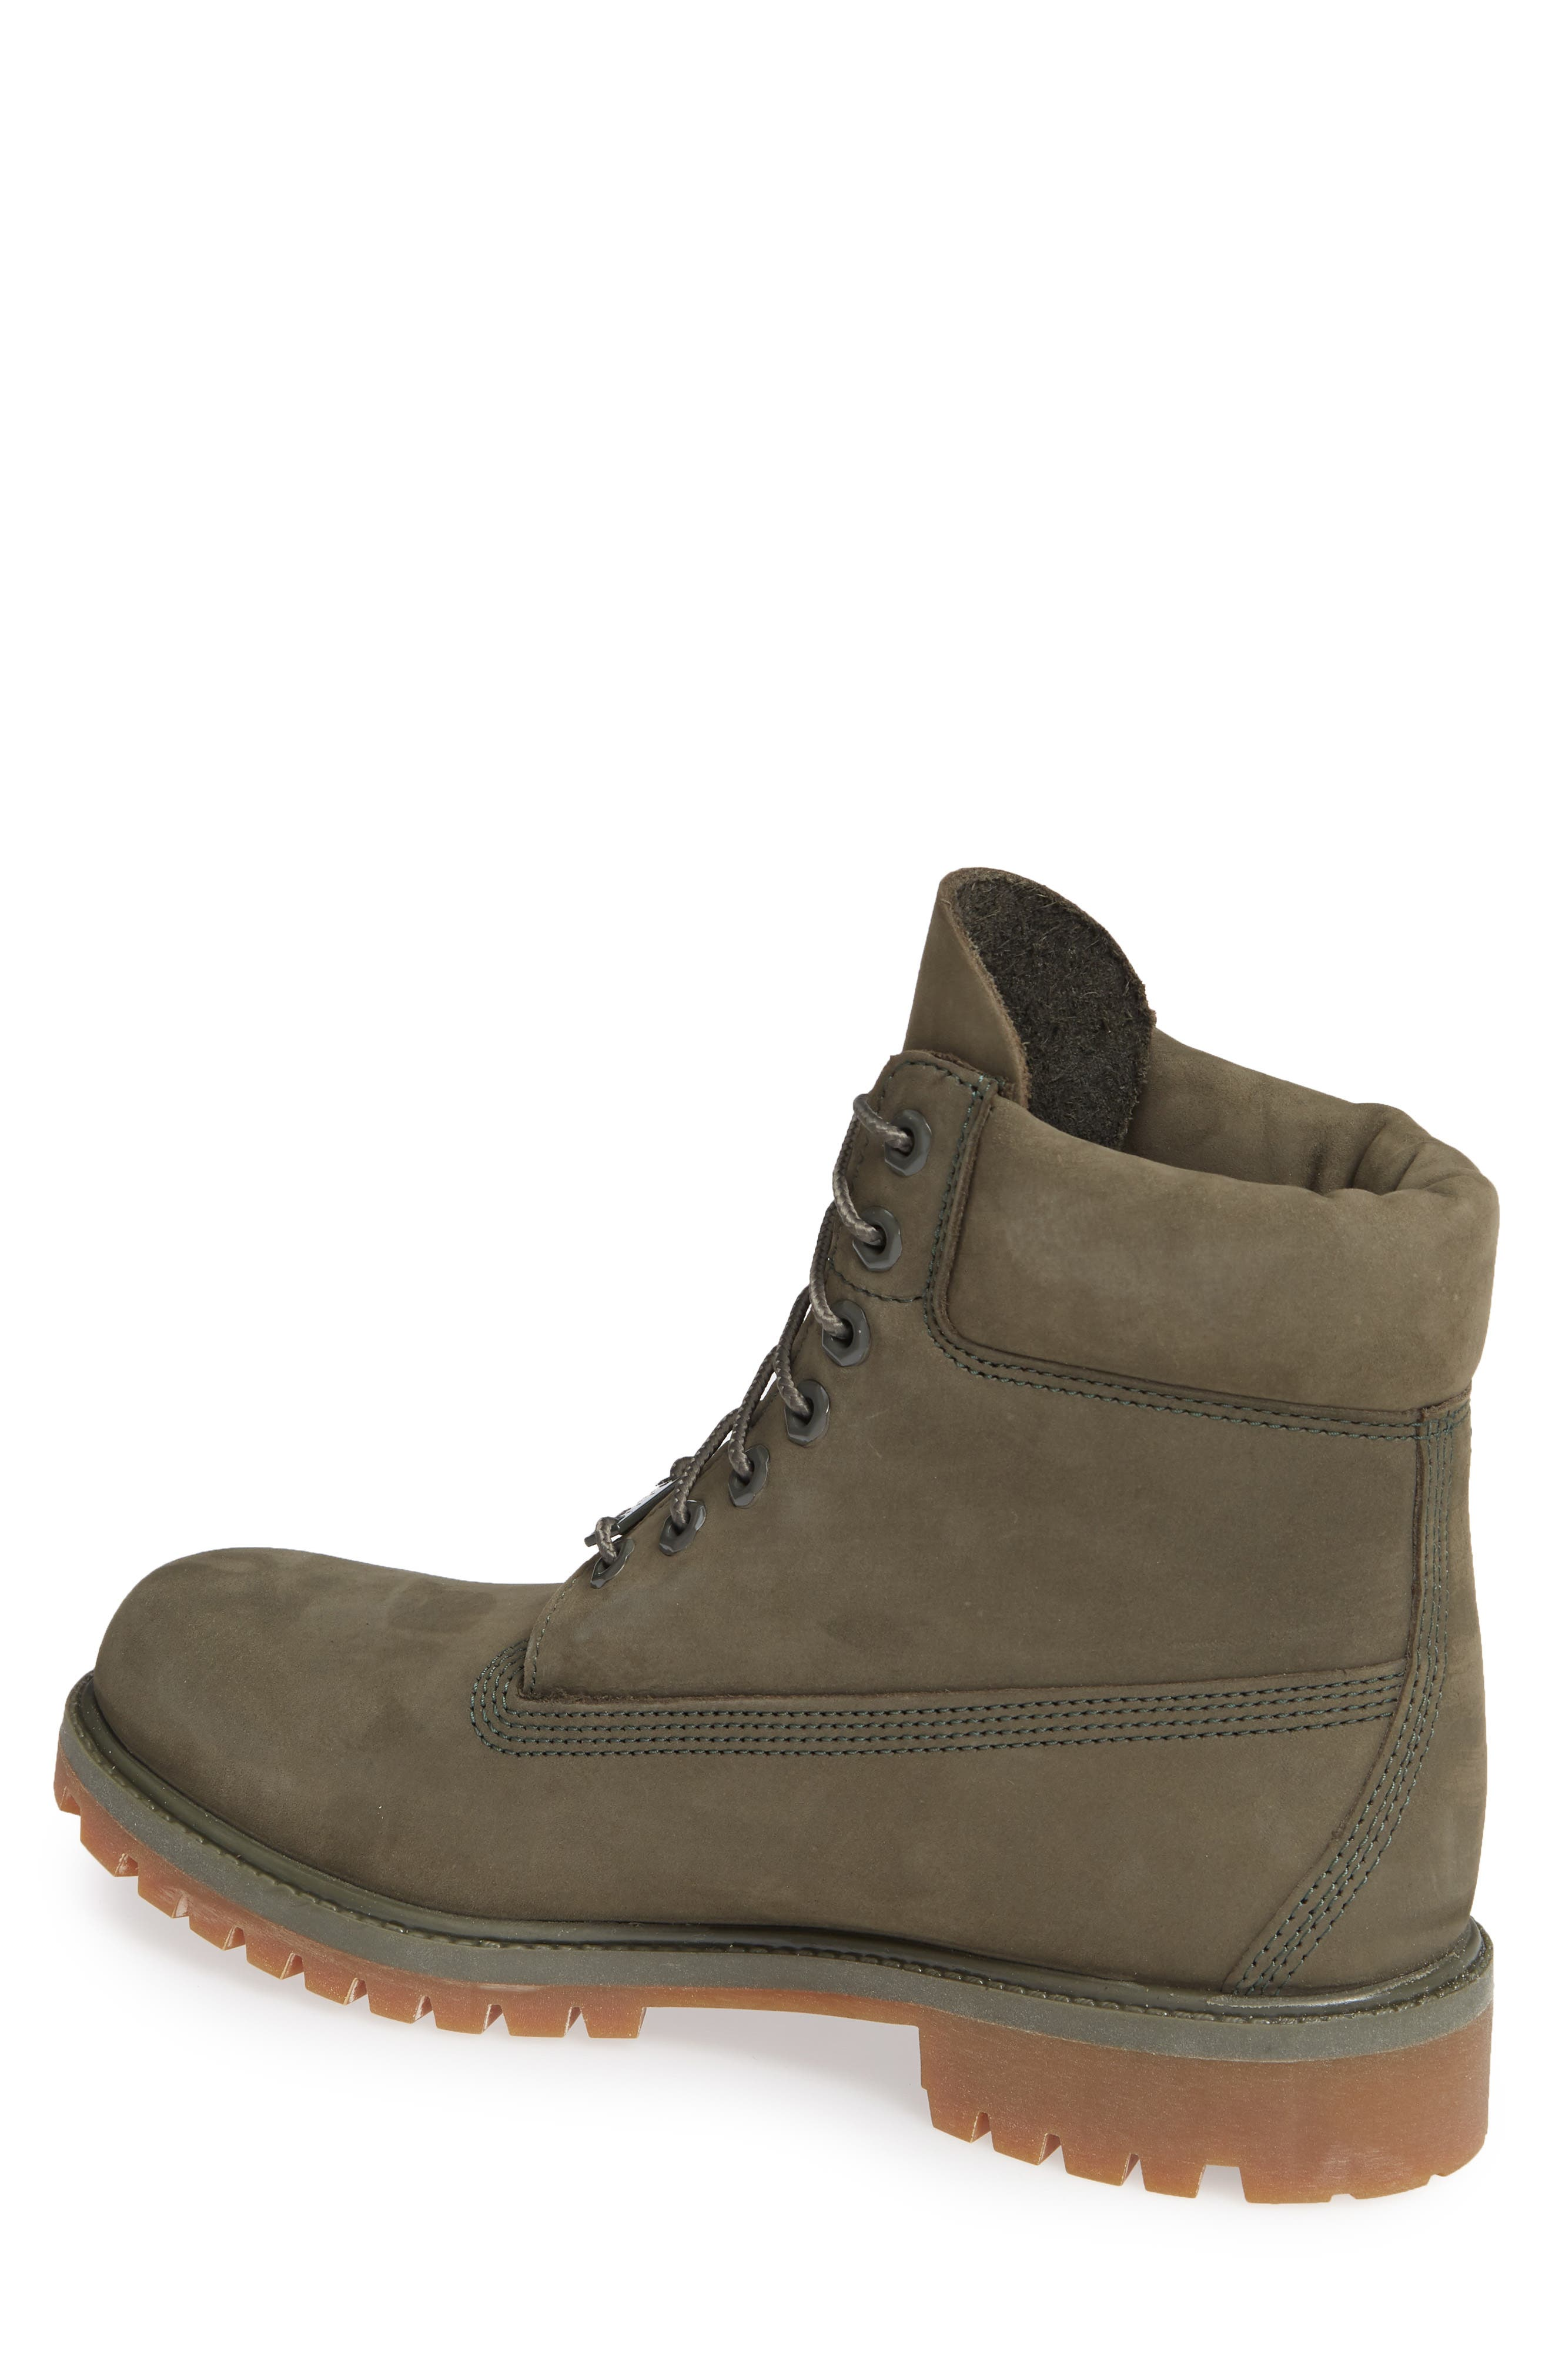 Six Inch Classic Waterproof Boots Series - Premium Waterproof Boot,                             Alternate thumbnail 2, color,                             GRAPE LEAF LEATHER